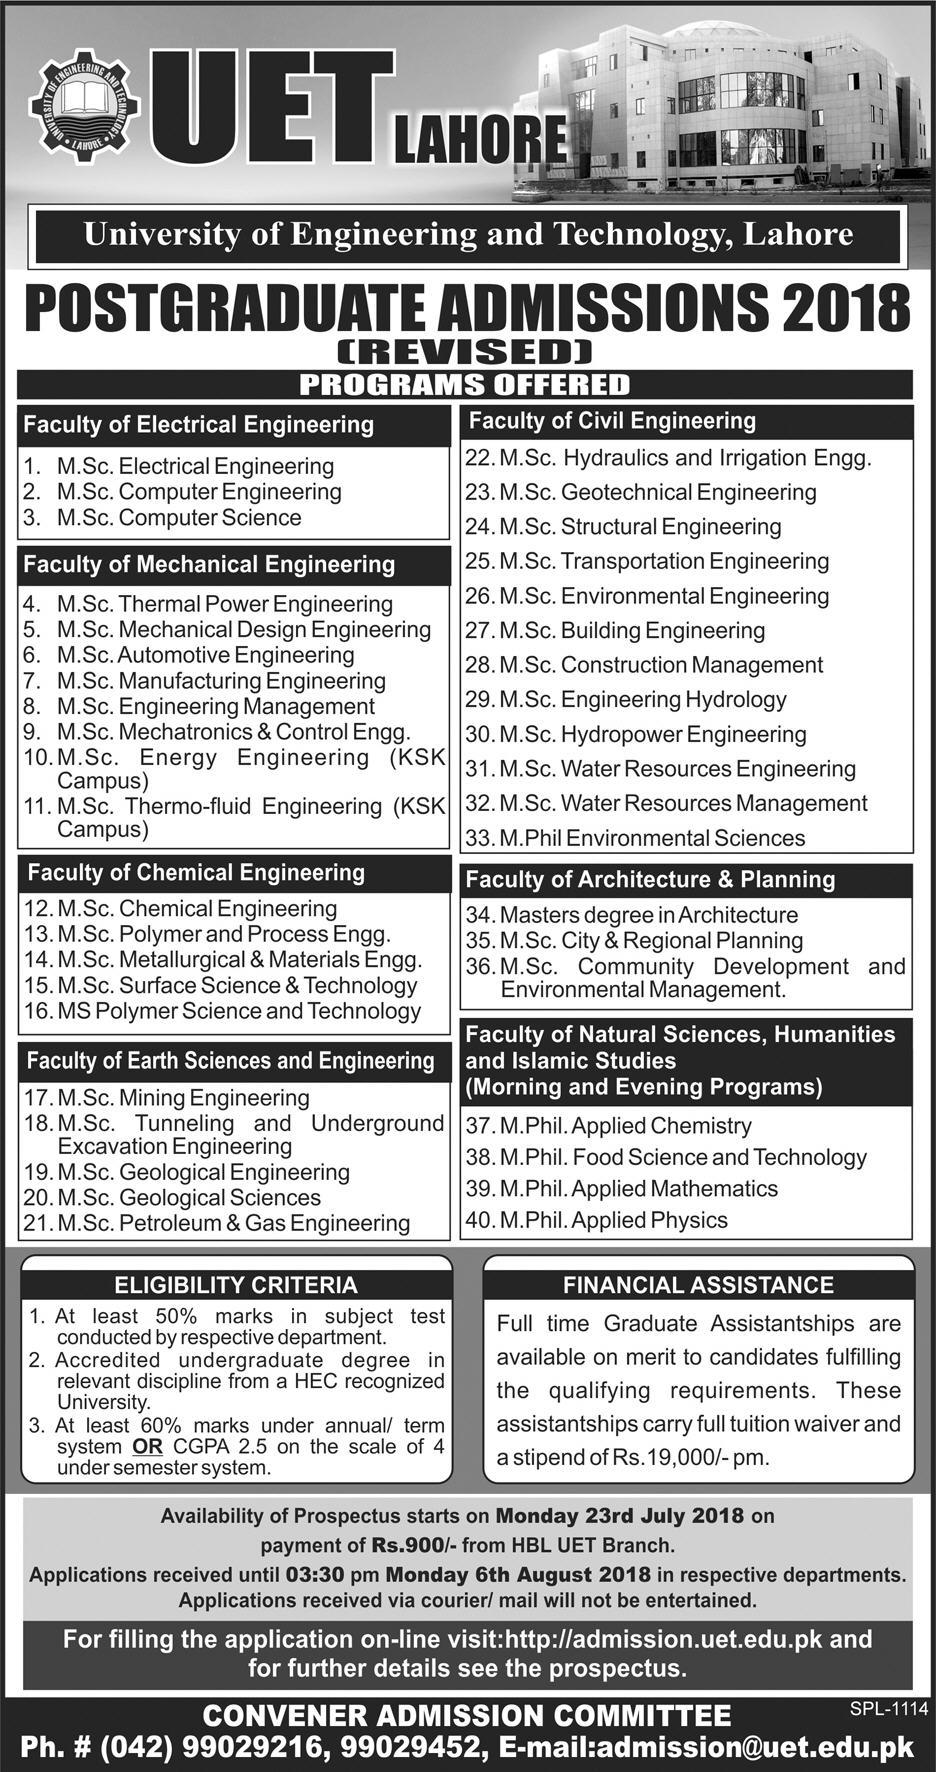 UET Lahore Postgraduate Admission 2018 Advertisement